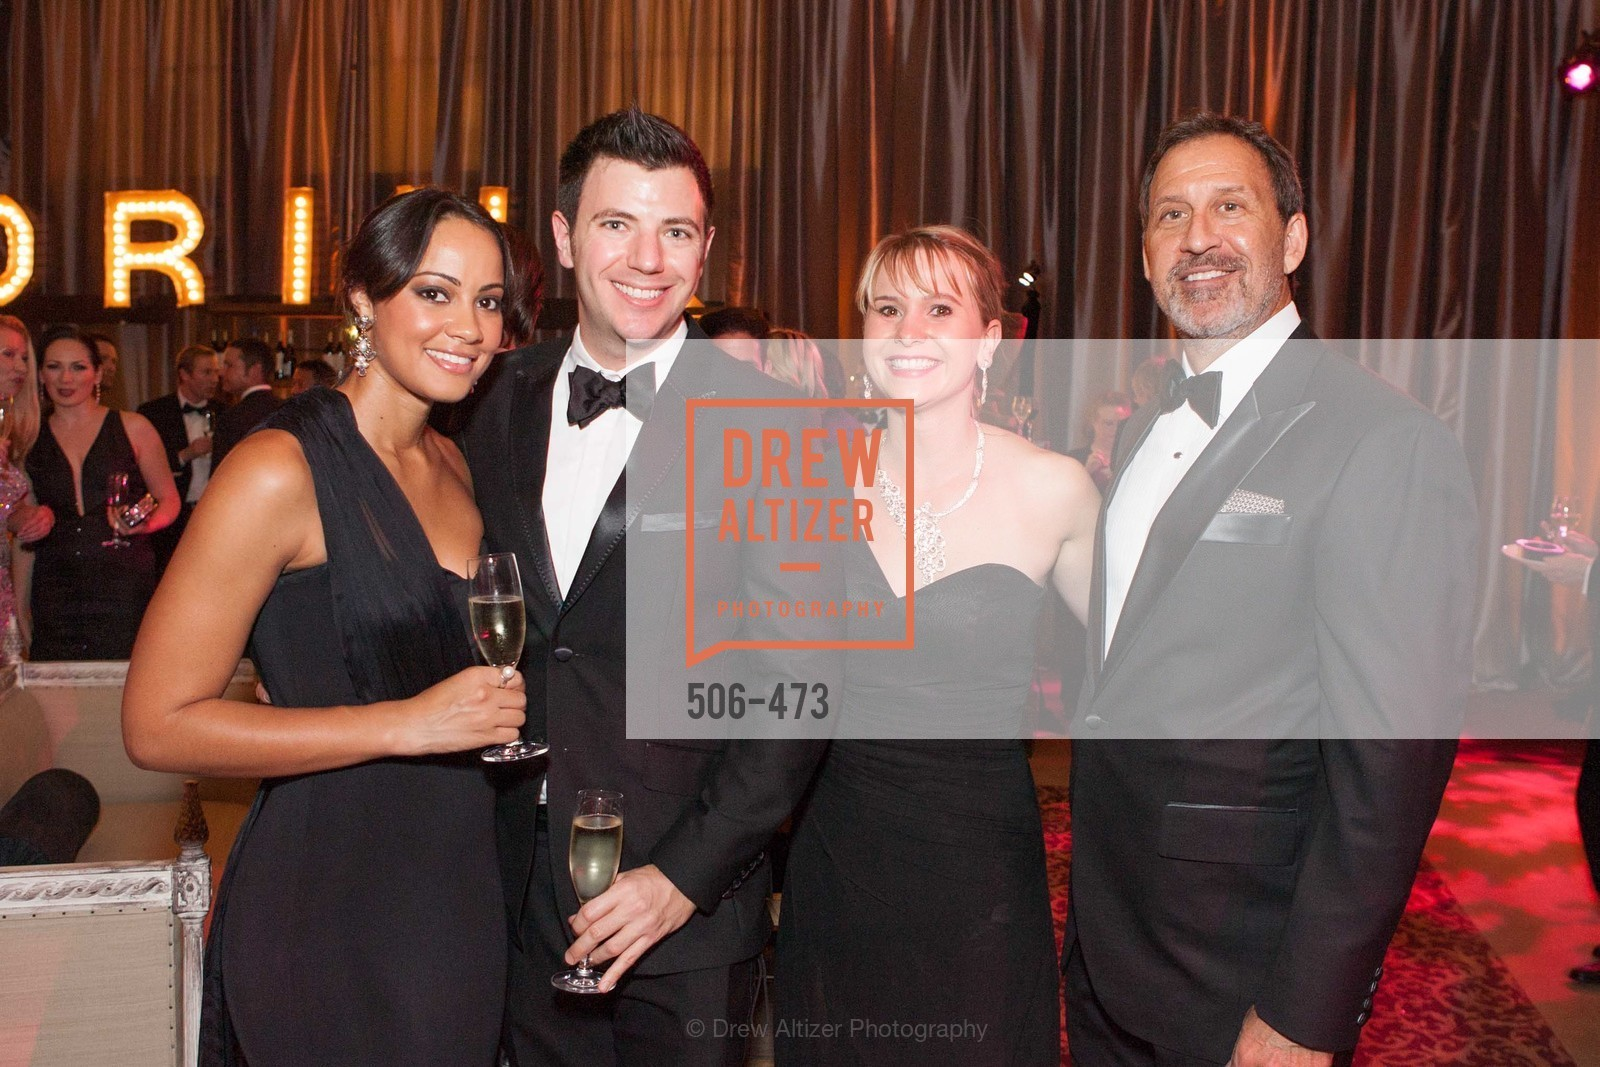 Rachel Cloy, Isaac Hall, Kelly Cramer, Steve Gomberg, ENCORE! at San Francisco BALLET'S 2014 Season Opening Night Gala, US. US, January 22nd, 2014,Drew Altizer, Drew Altizer Photography, full-service event agency, private events, San Francisco photographer, photographer California